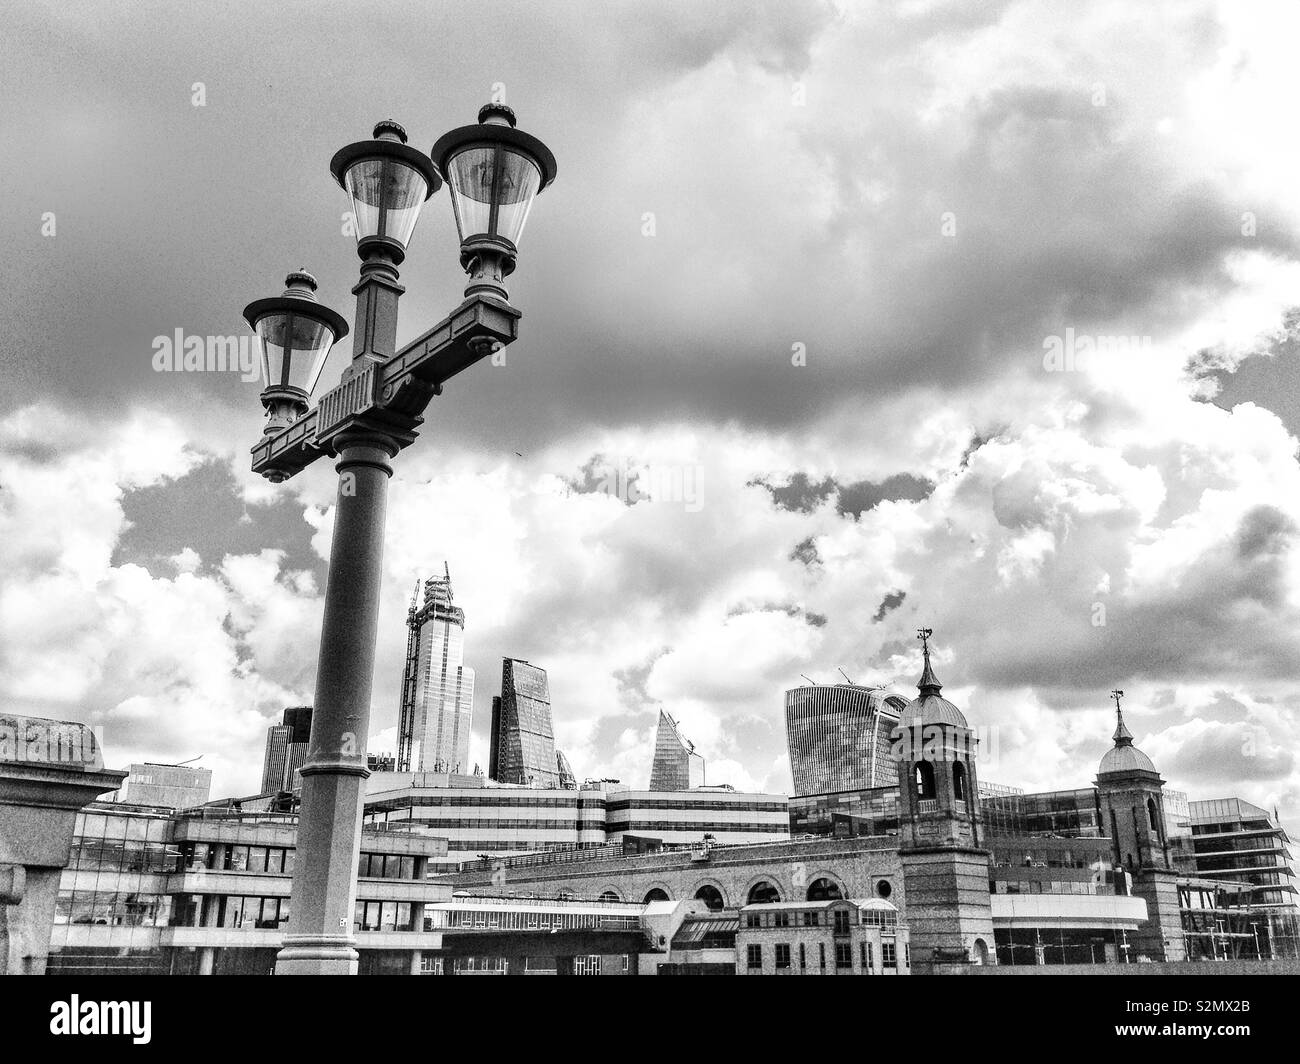 A view of the City of London skyline seen from Southwark bridge, over the River Thames, in London, England, UK. - Stock Image